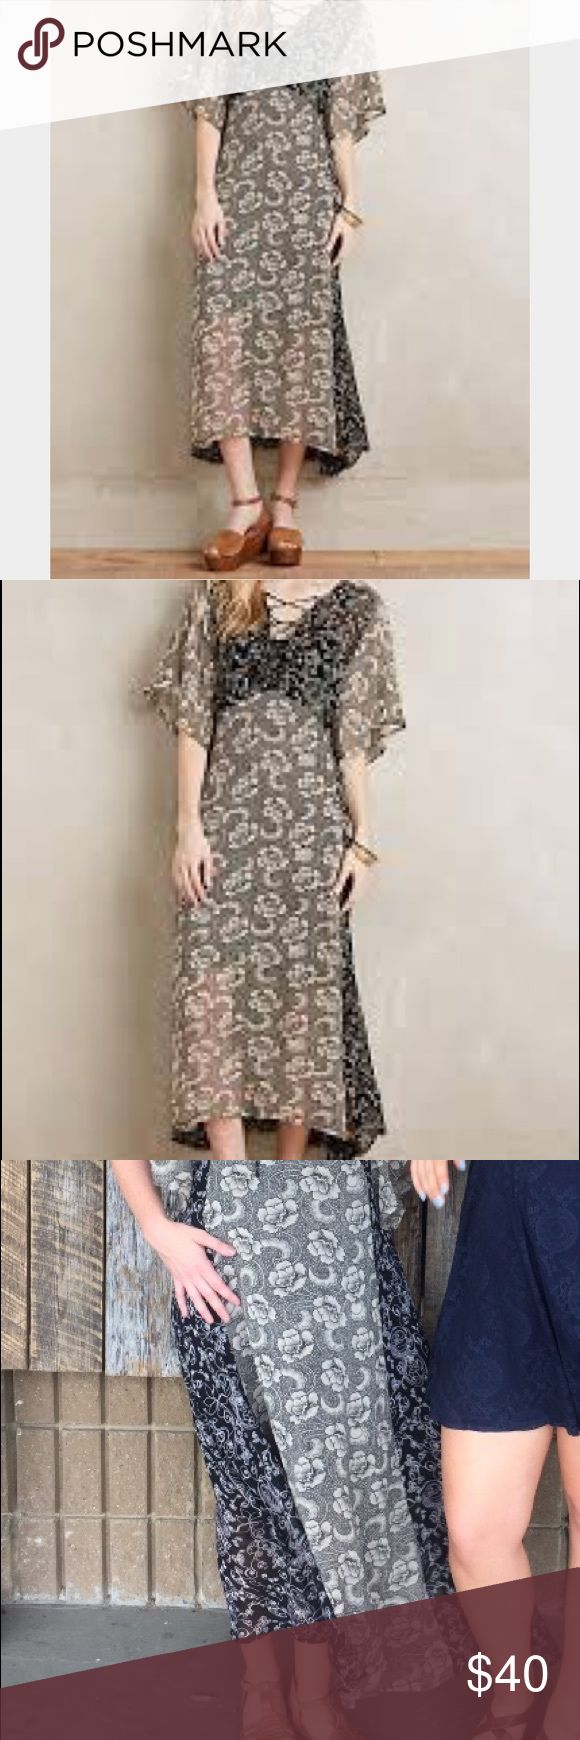 NWOT Maxi Dress M Anthropologie Floral Lace-Up Maxi Dress. Lace-up tie-up Cross-cross front, kimono batwing dolman style sleeves, floral print, empire waist. Semi-sheer but there is an attached black slip dress to line. Size: M Medium. Brand: One Fine Day. Purchased from Anthropologie.  Made in India. Condition: Like New. Worn once in as seen in the photos. EUC. Flowy, comfortable, sophisticated bohemian-inspired style. Anthropologie Dresses Maxi